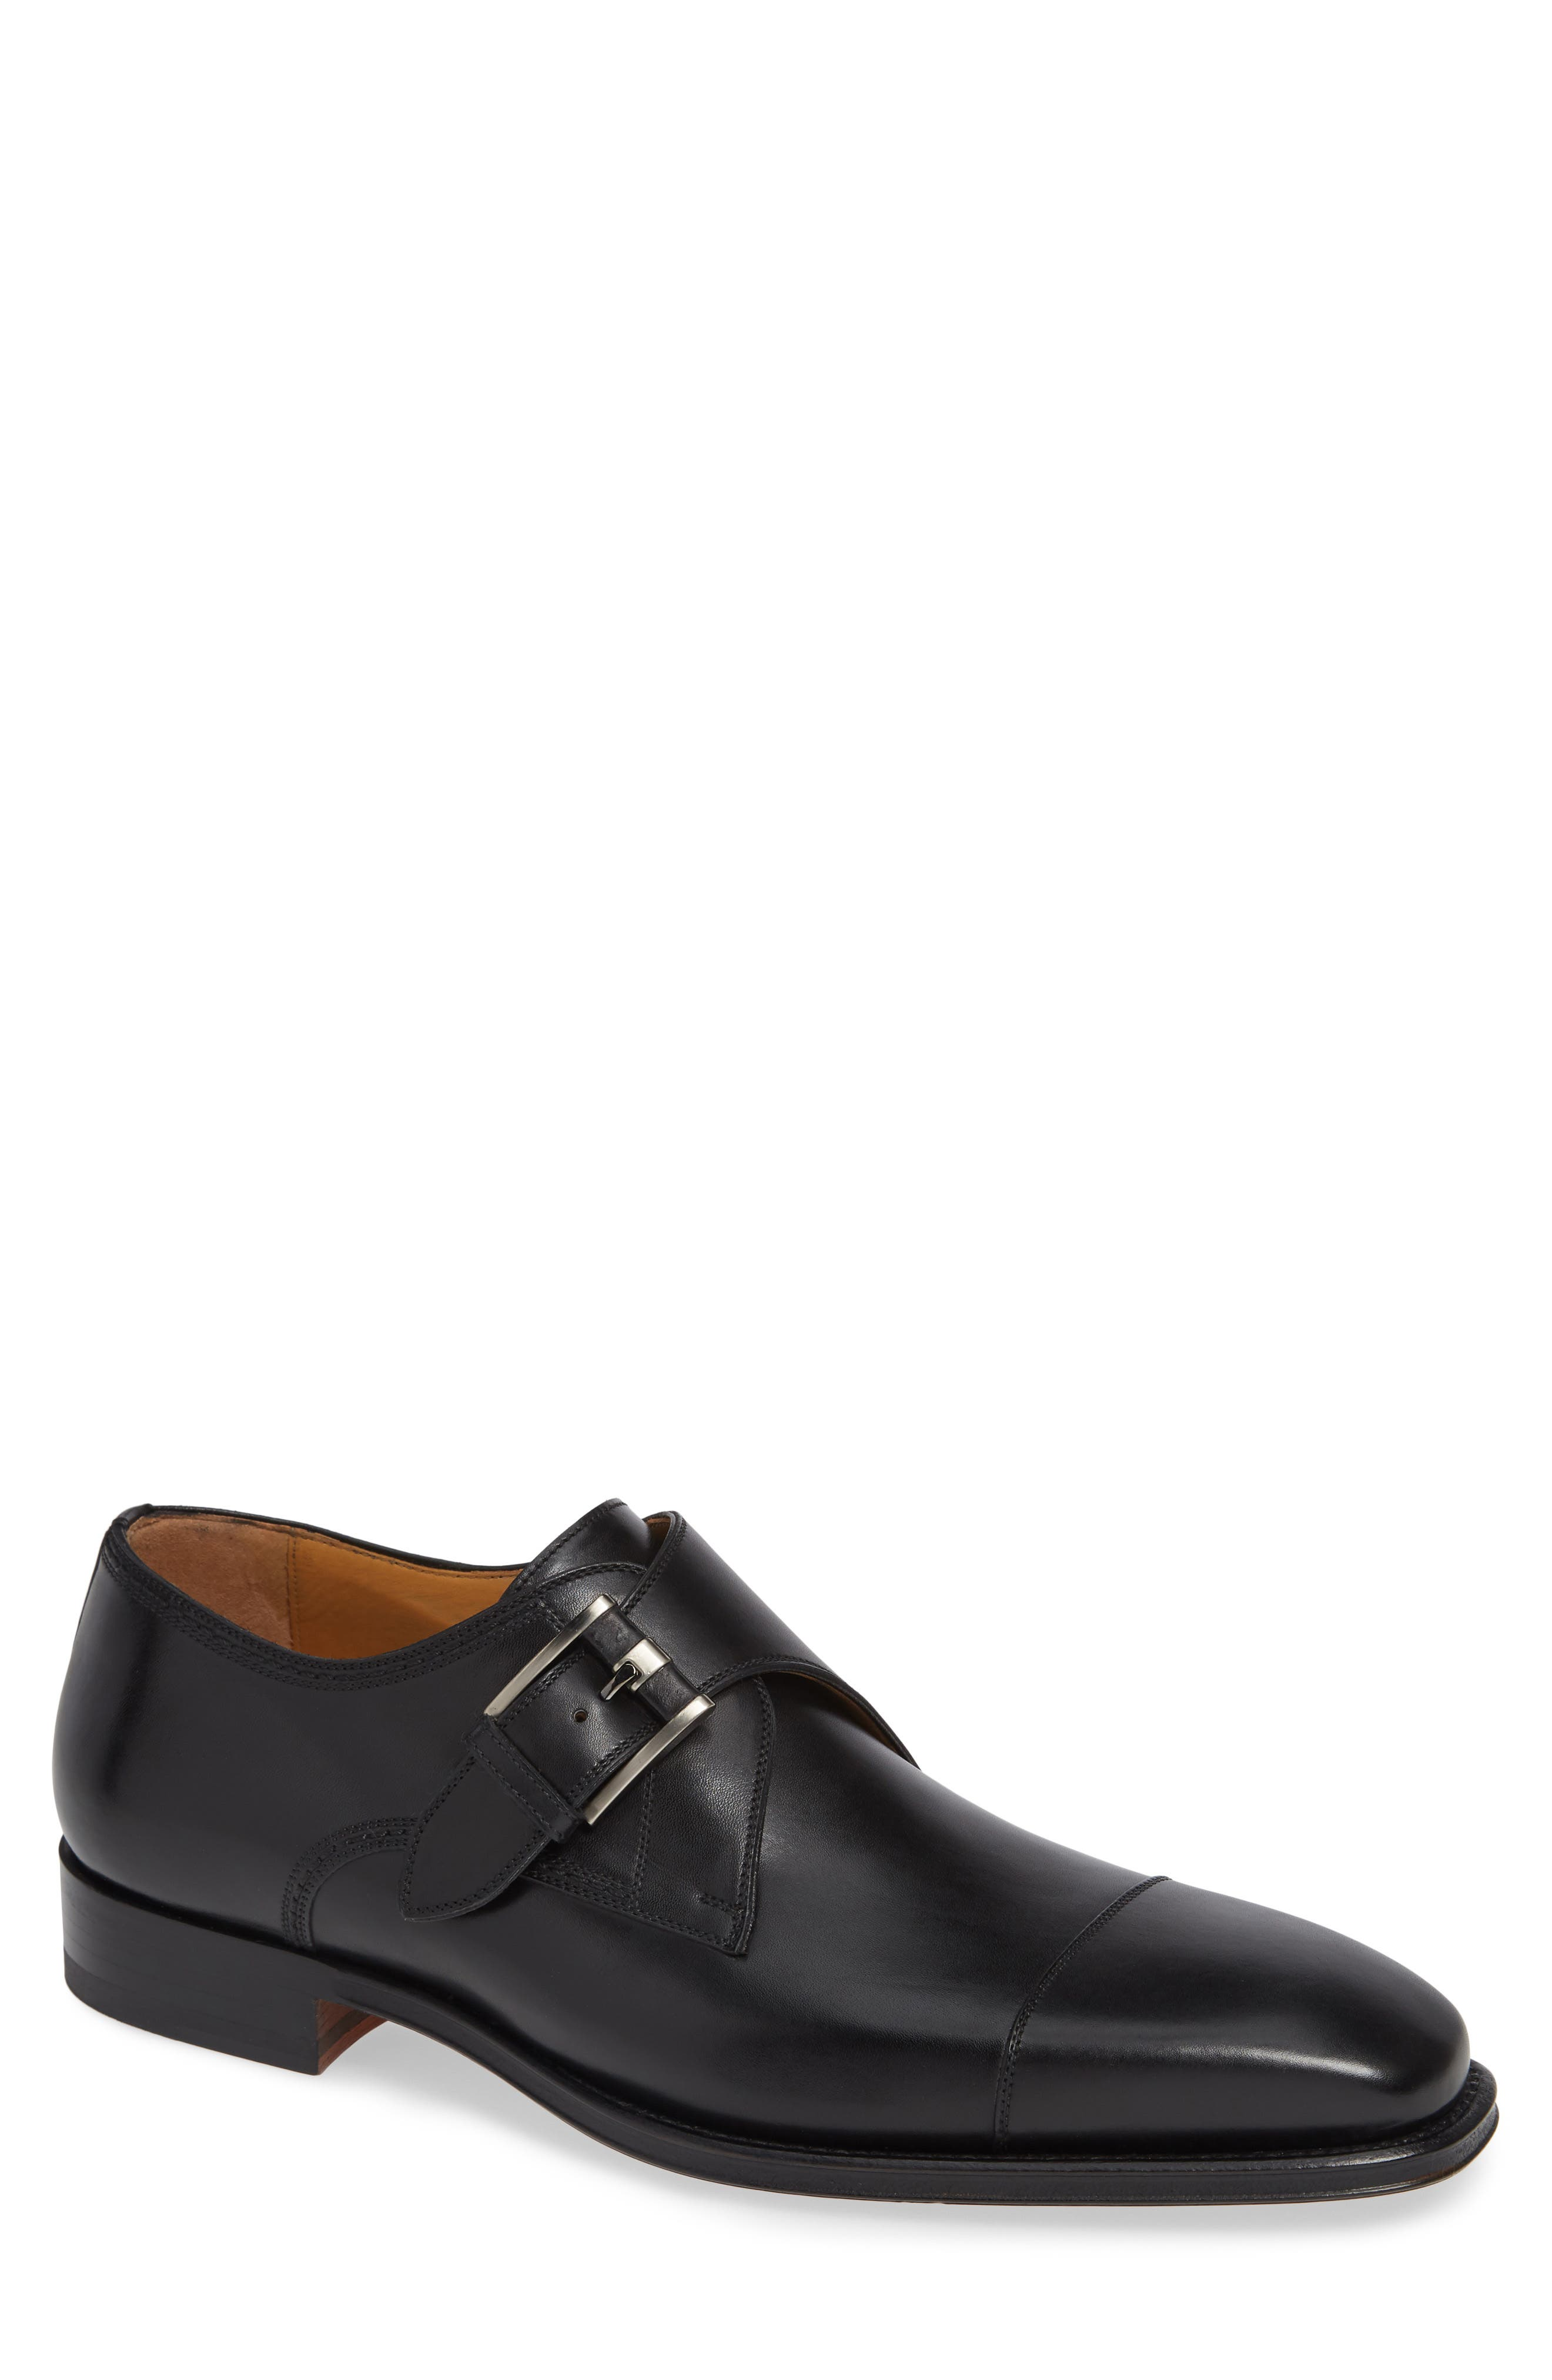 A polished buckle anchors a smartly tapered cap-toe monk strap shoe that fits snug as a glove and carries on with sophistication. Style Name: Magnanni Lennon Monk Strap Shoe (Men). Style Number: 5602399. Available in stores.